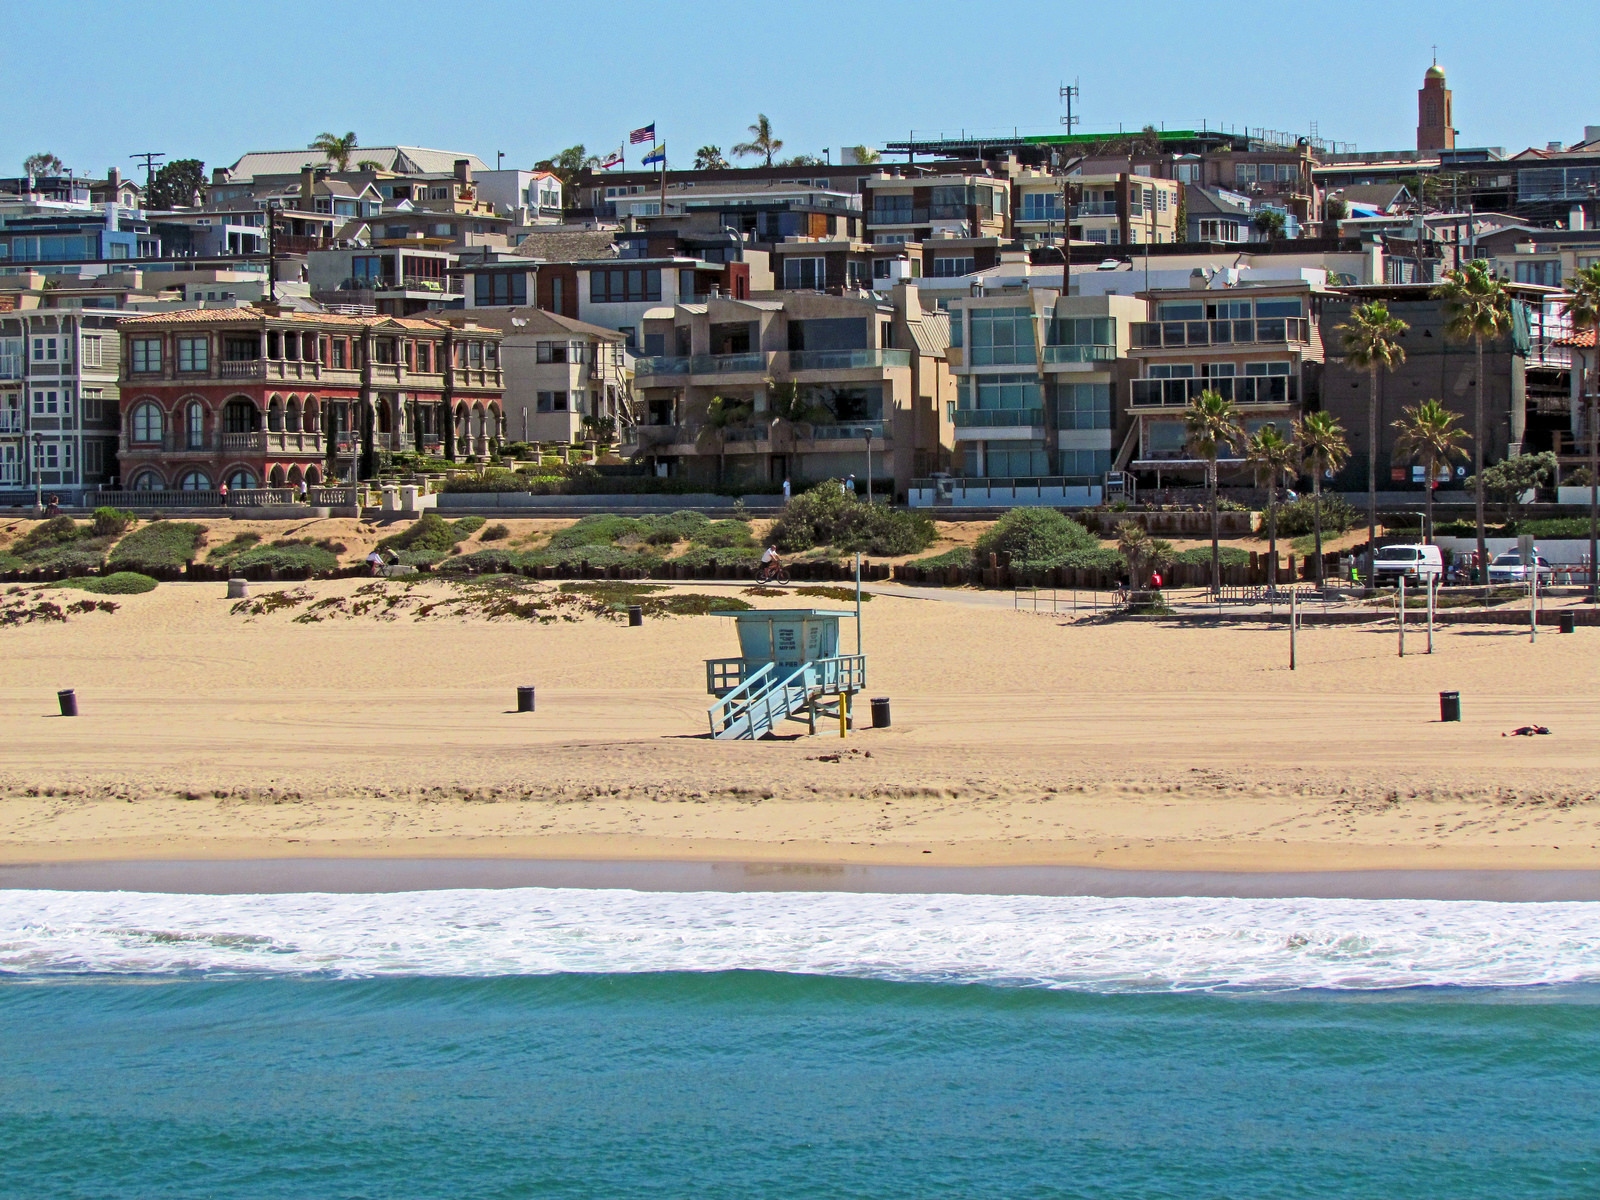 Things To Do In Manhattan Beach For